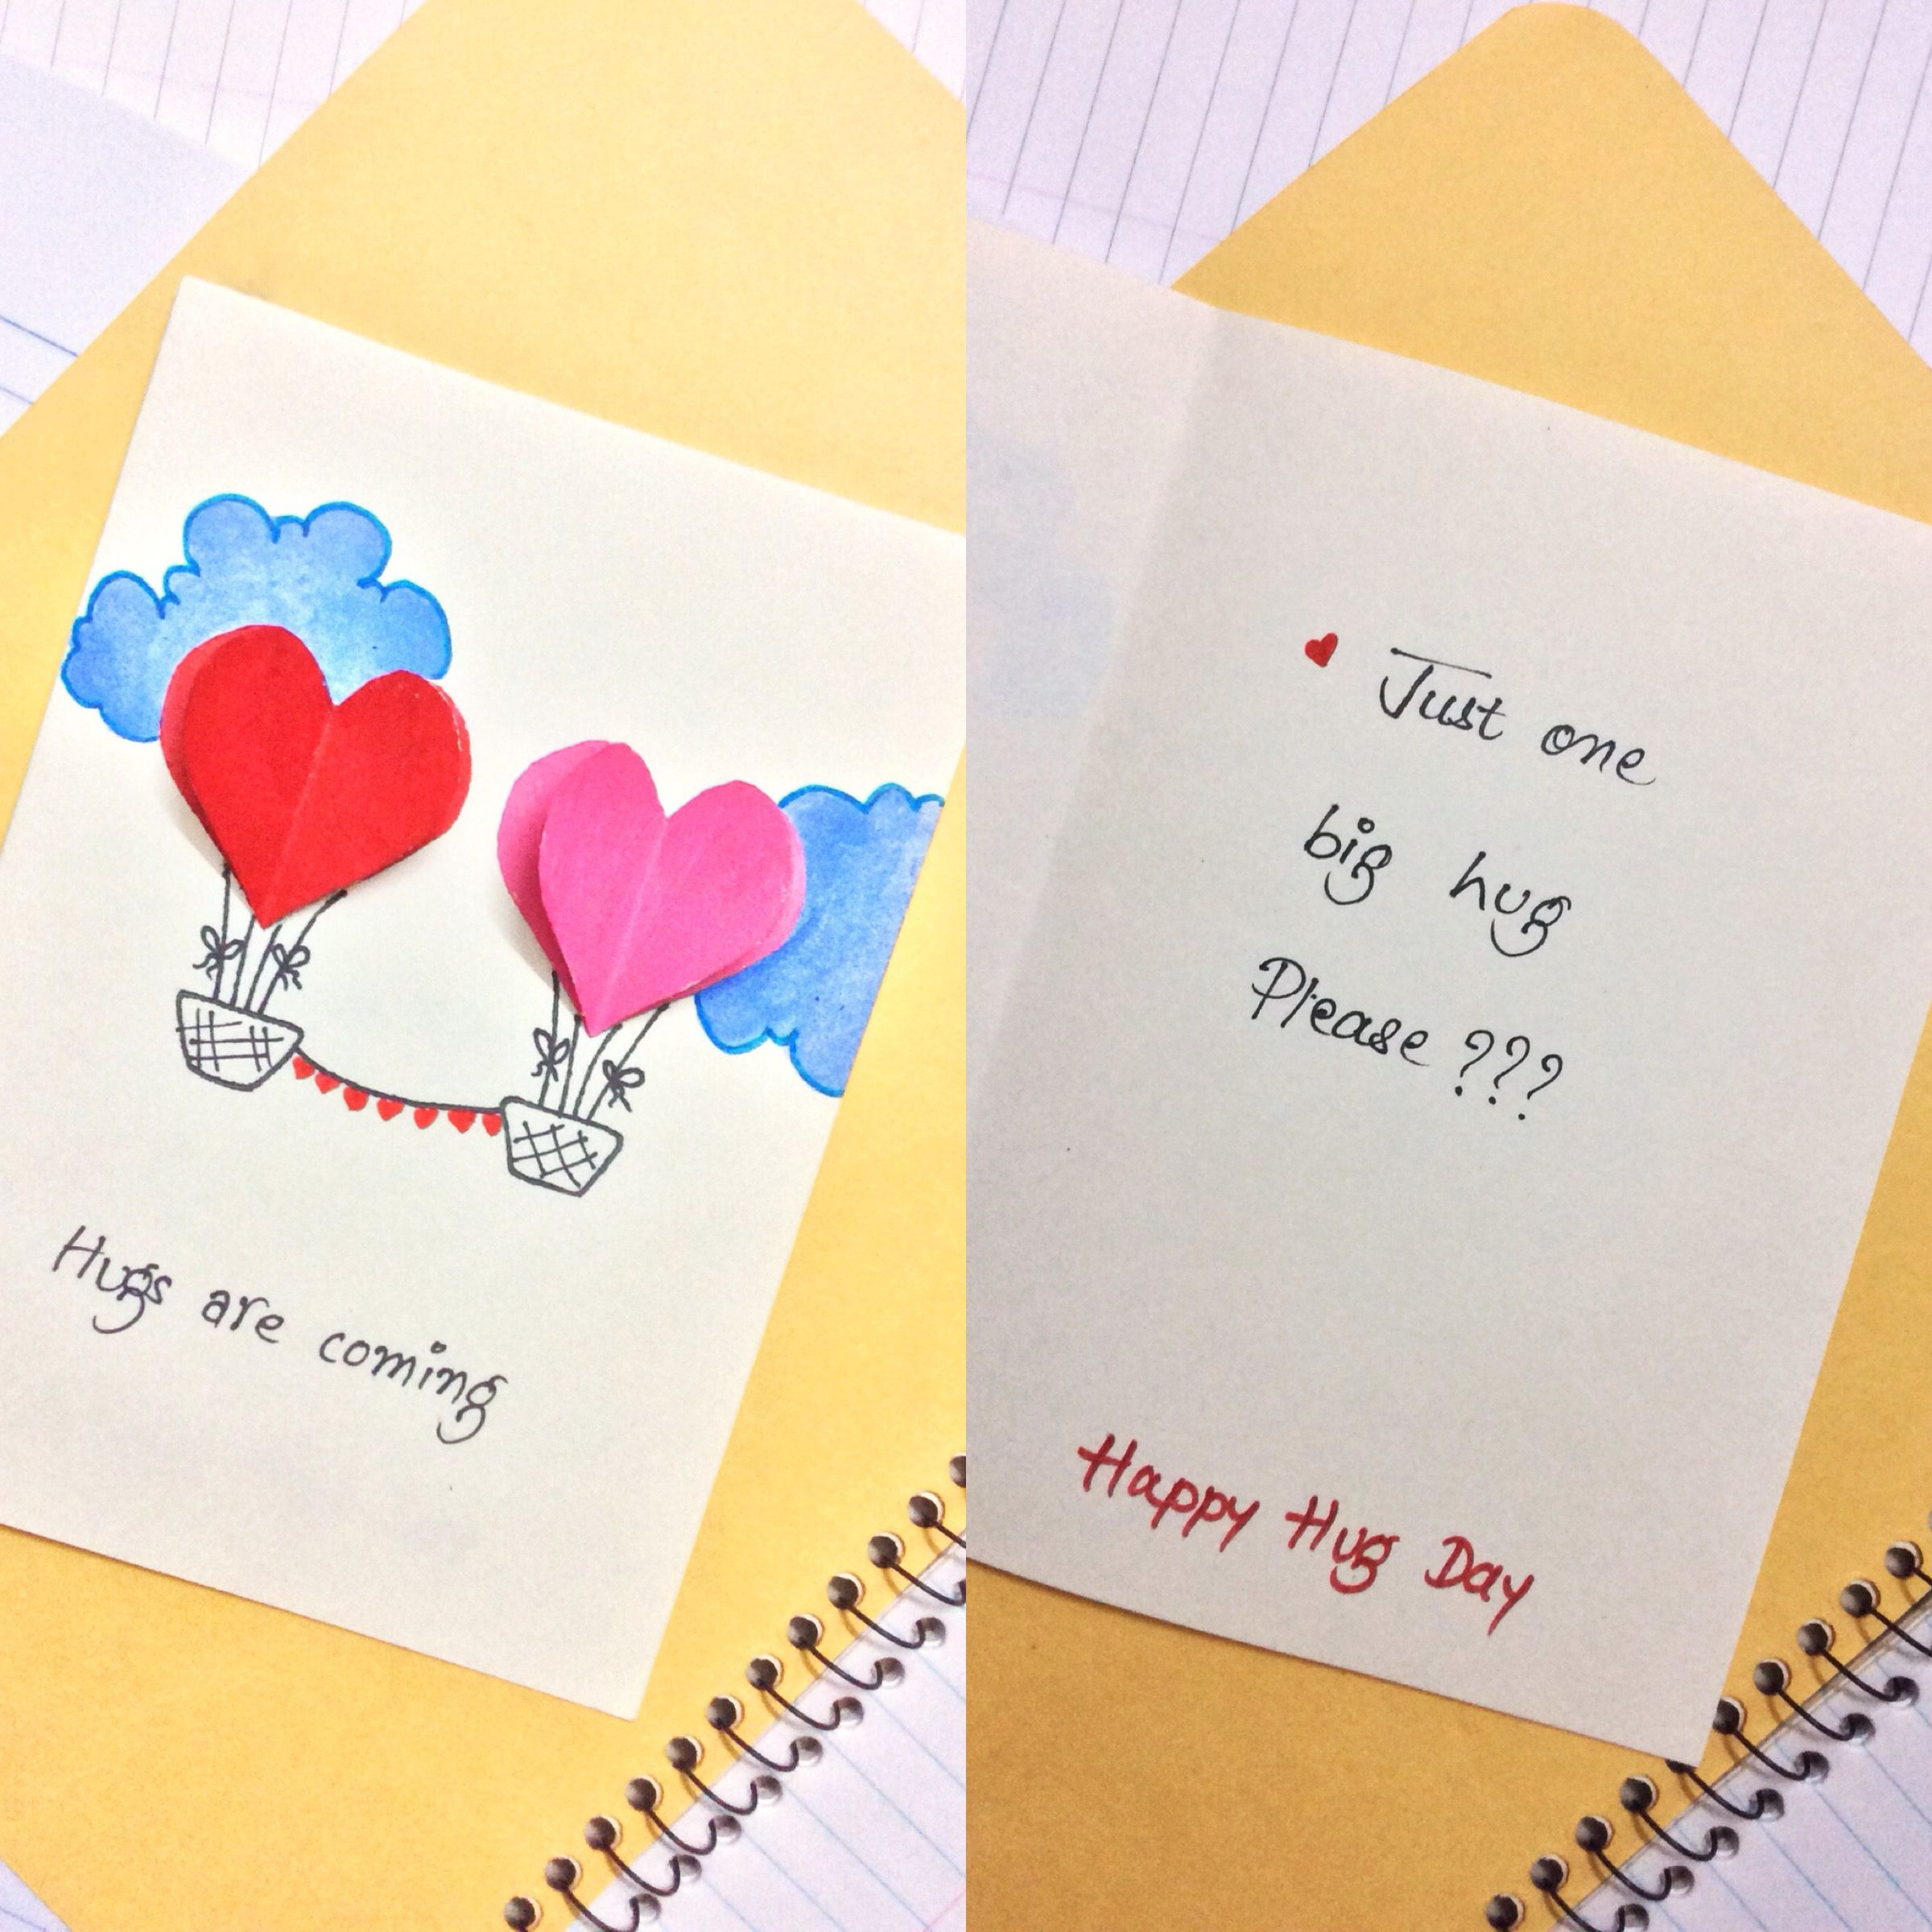 Card Making Ideas For Husband Part - 45: Hug Day Card Valentine Day Weekly Cards Making DIY Crafts For Husband /wife/boyfriend